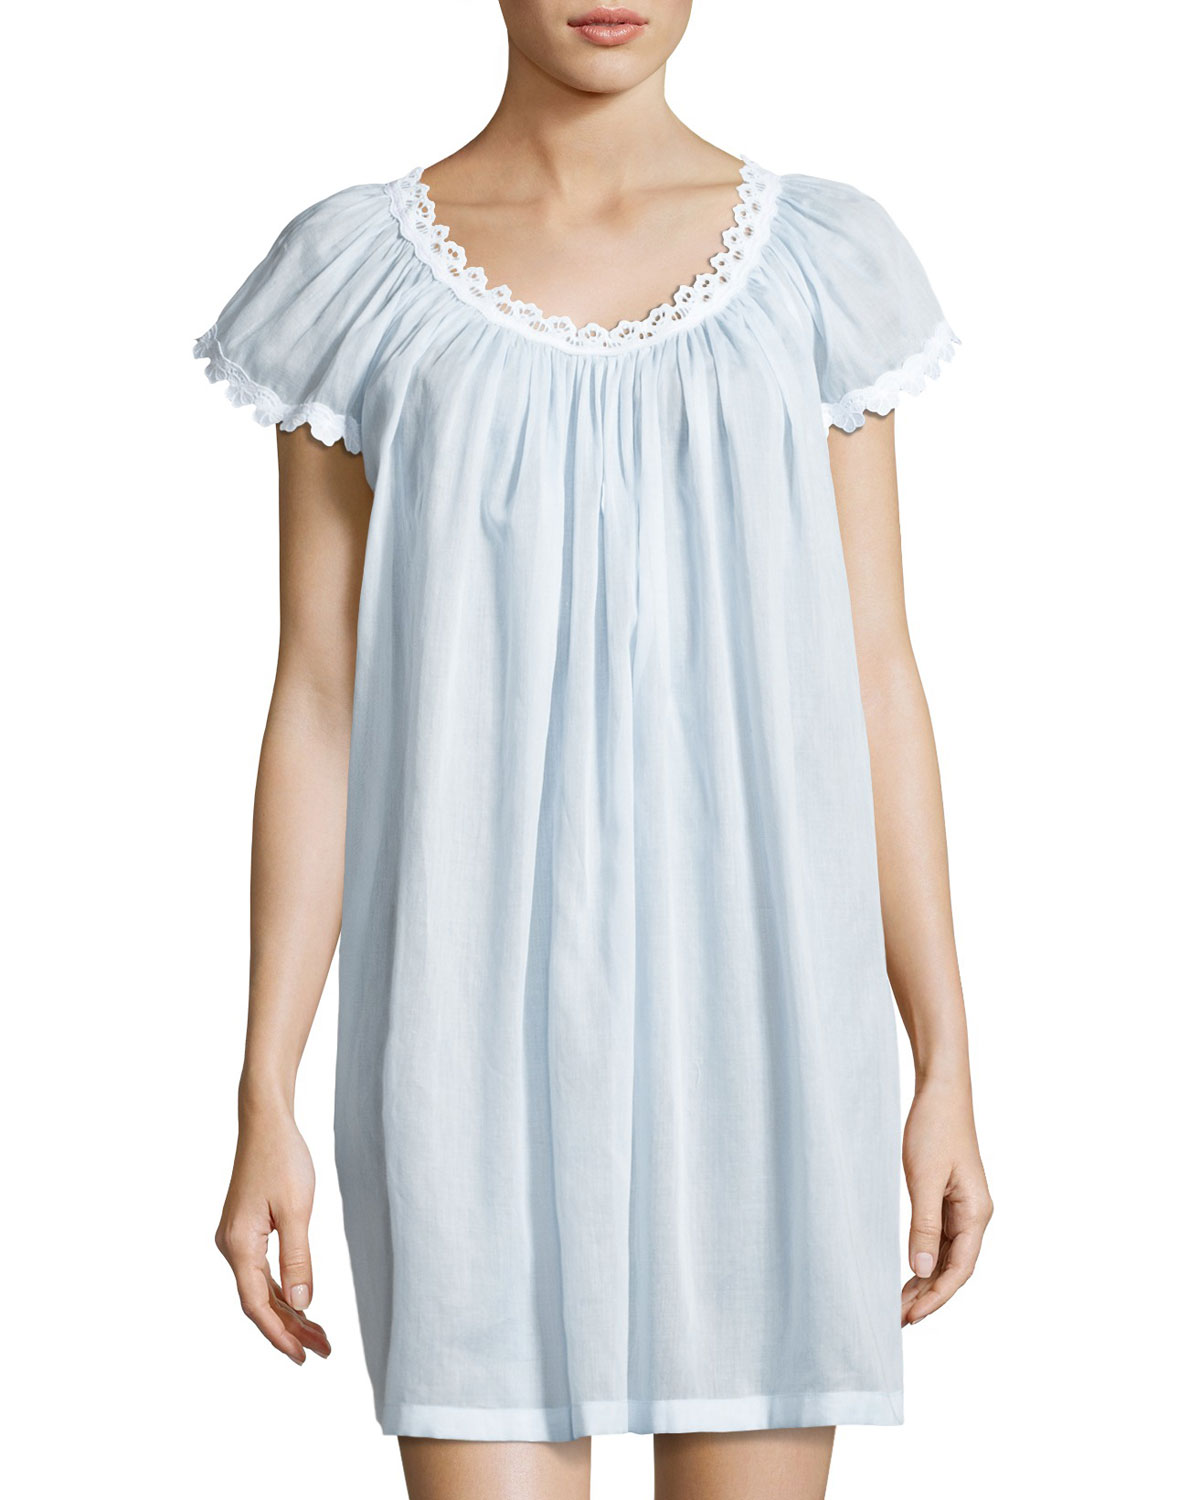 Celestine Jule Cap-Sleeve Short Nightgown 6a9f1d63e